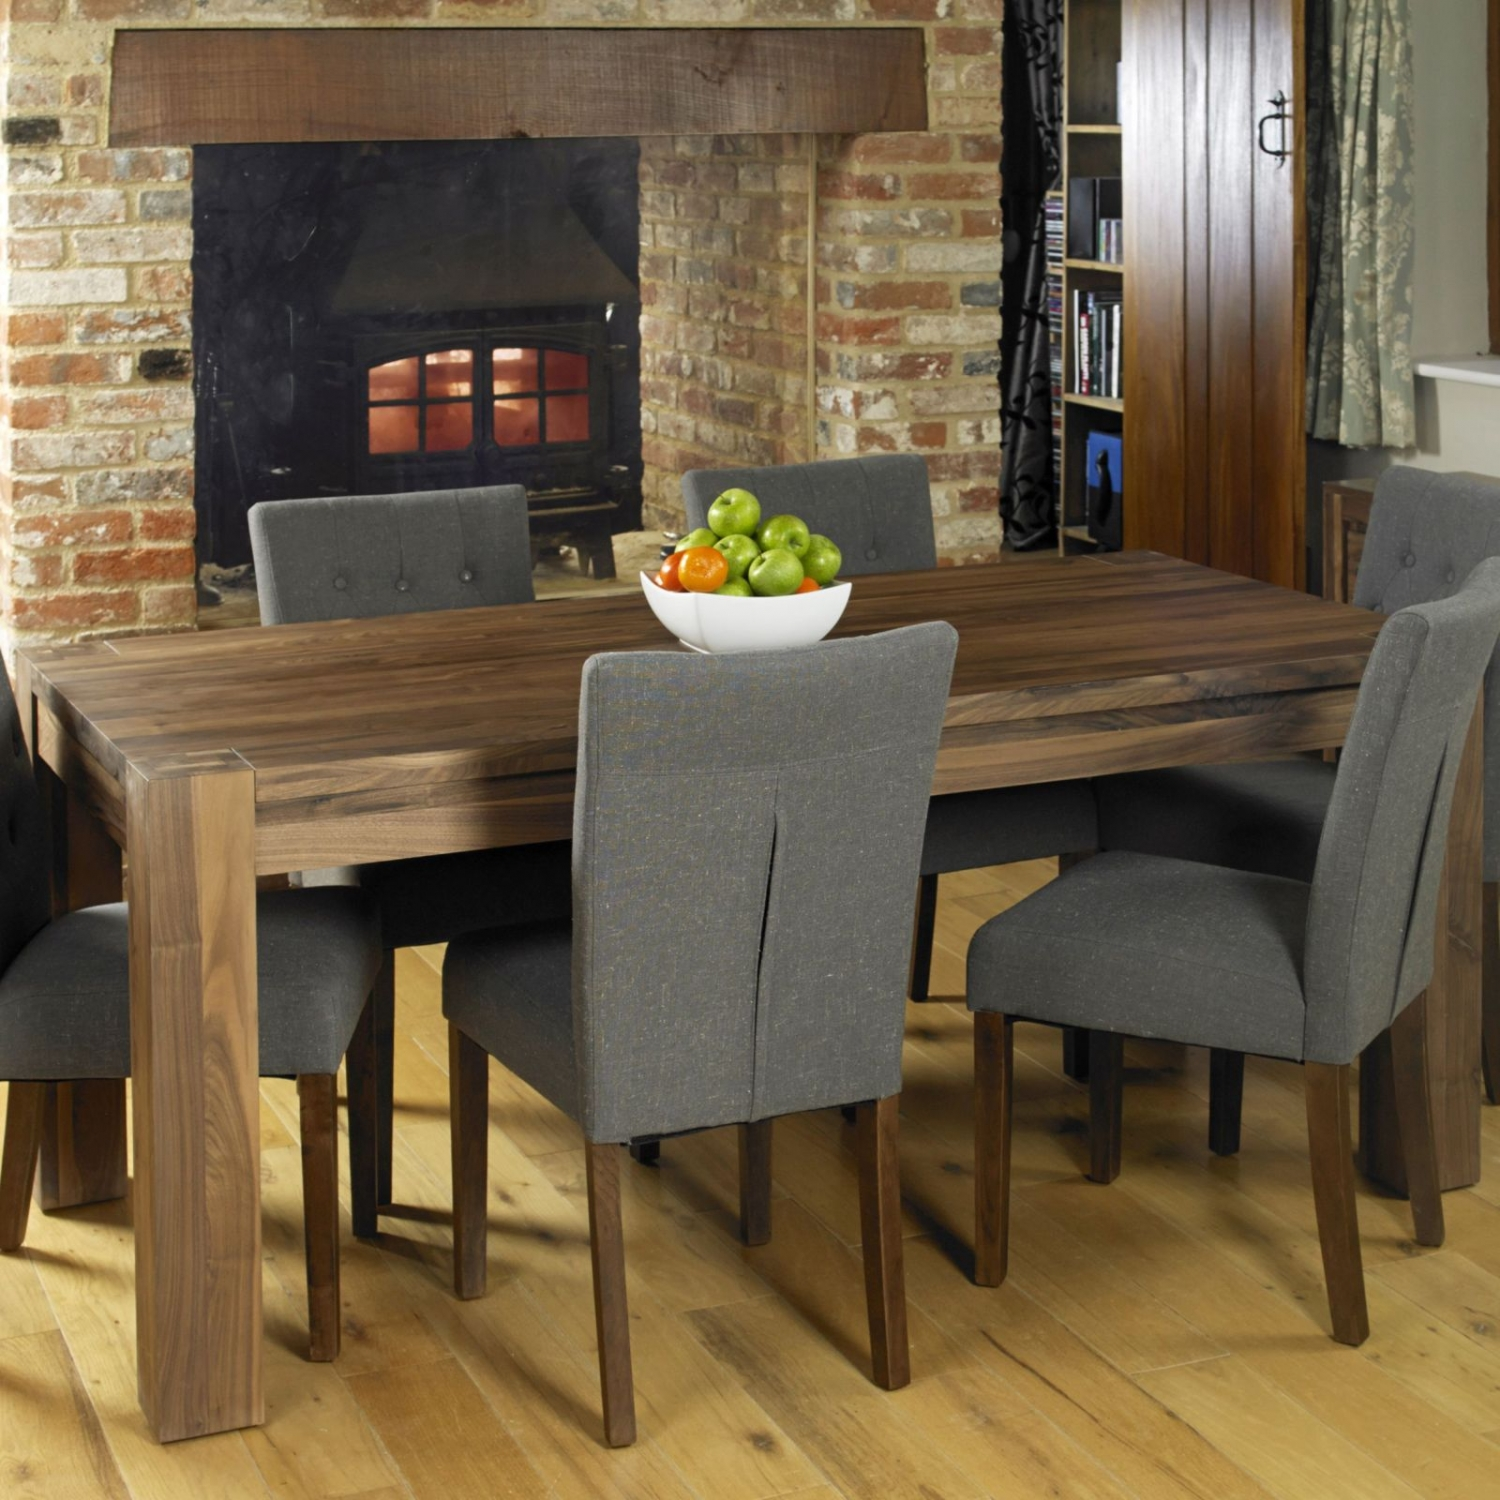 Strathmore Solid Walnut Home Dining Room Furniture Six